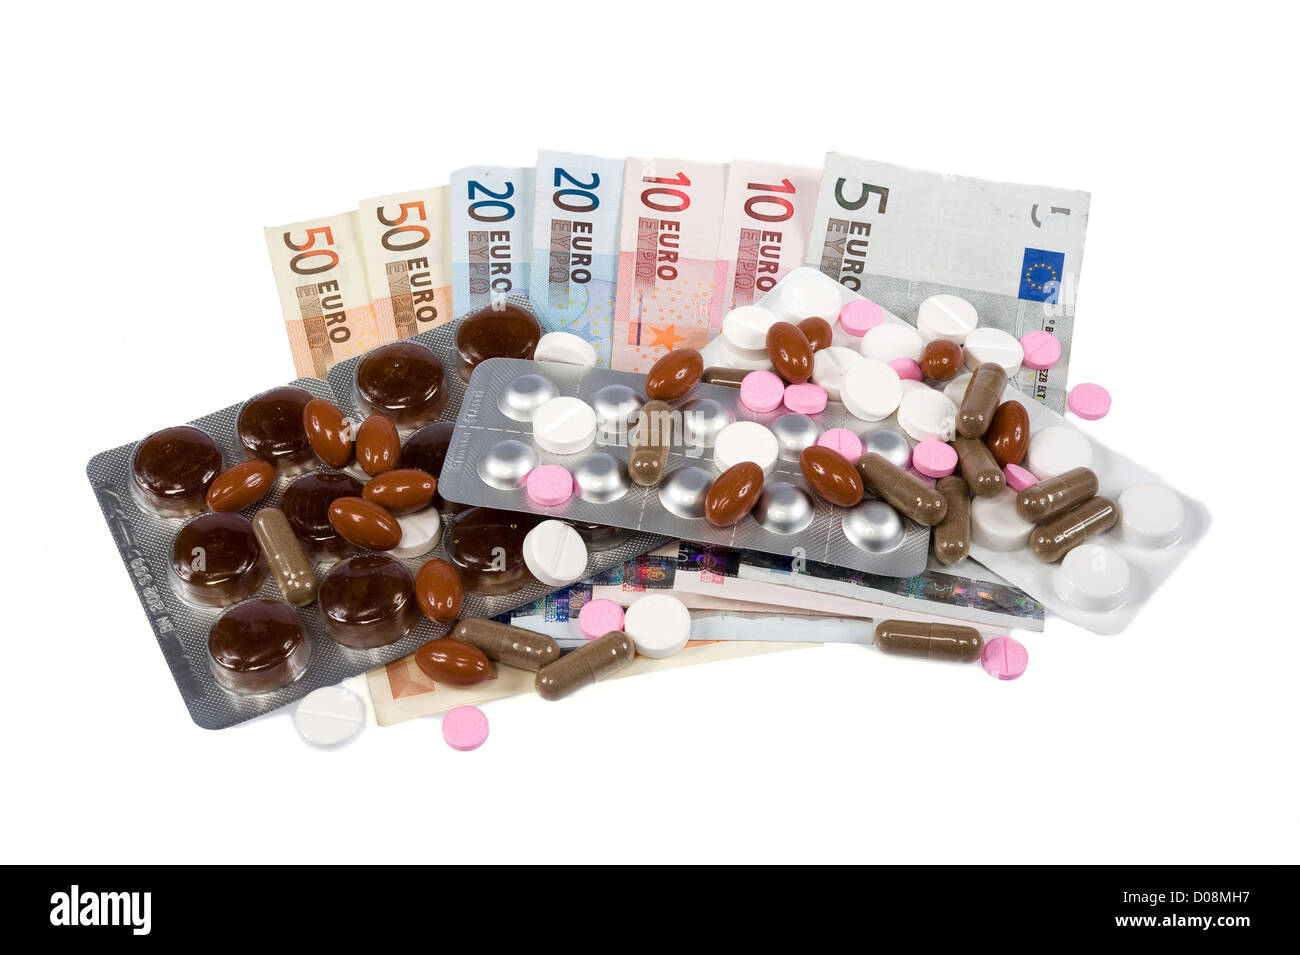 Medicines and pills on euro paper money - Stock Image